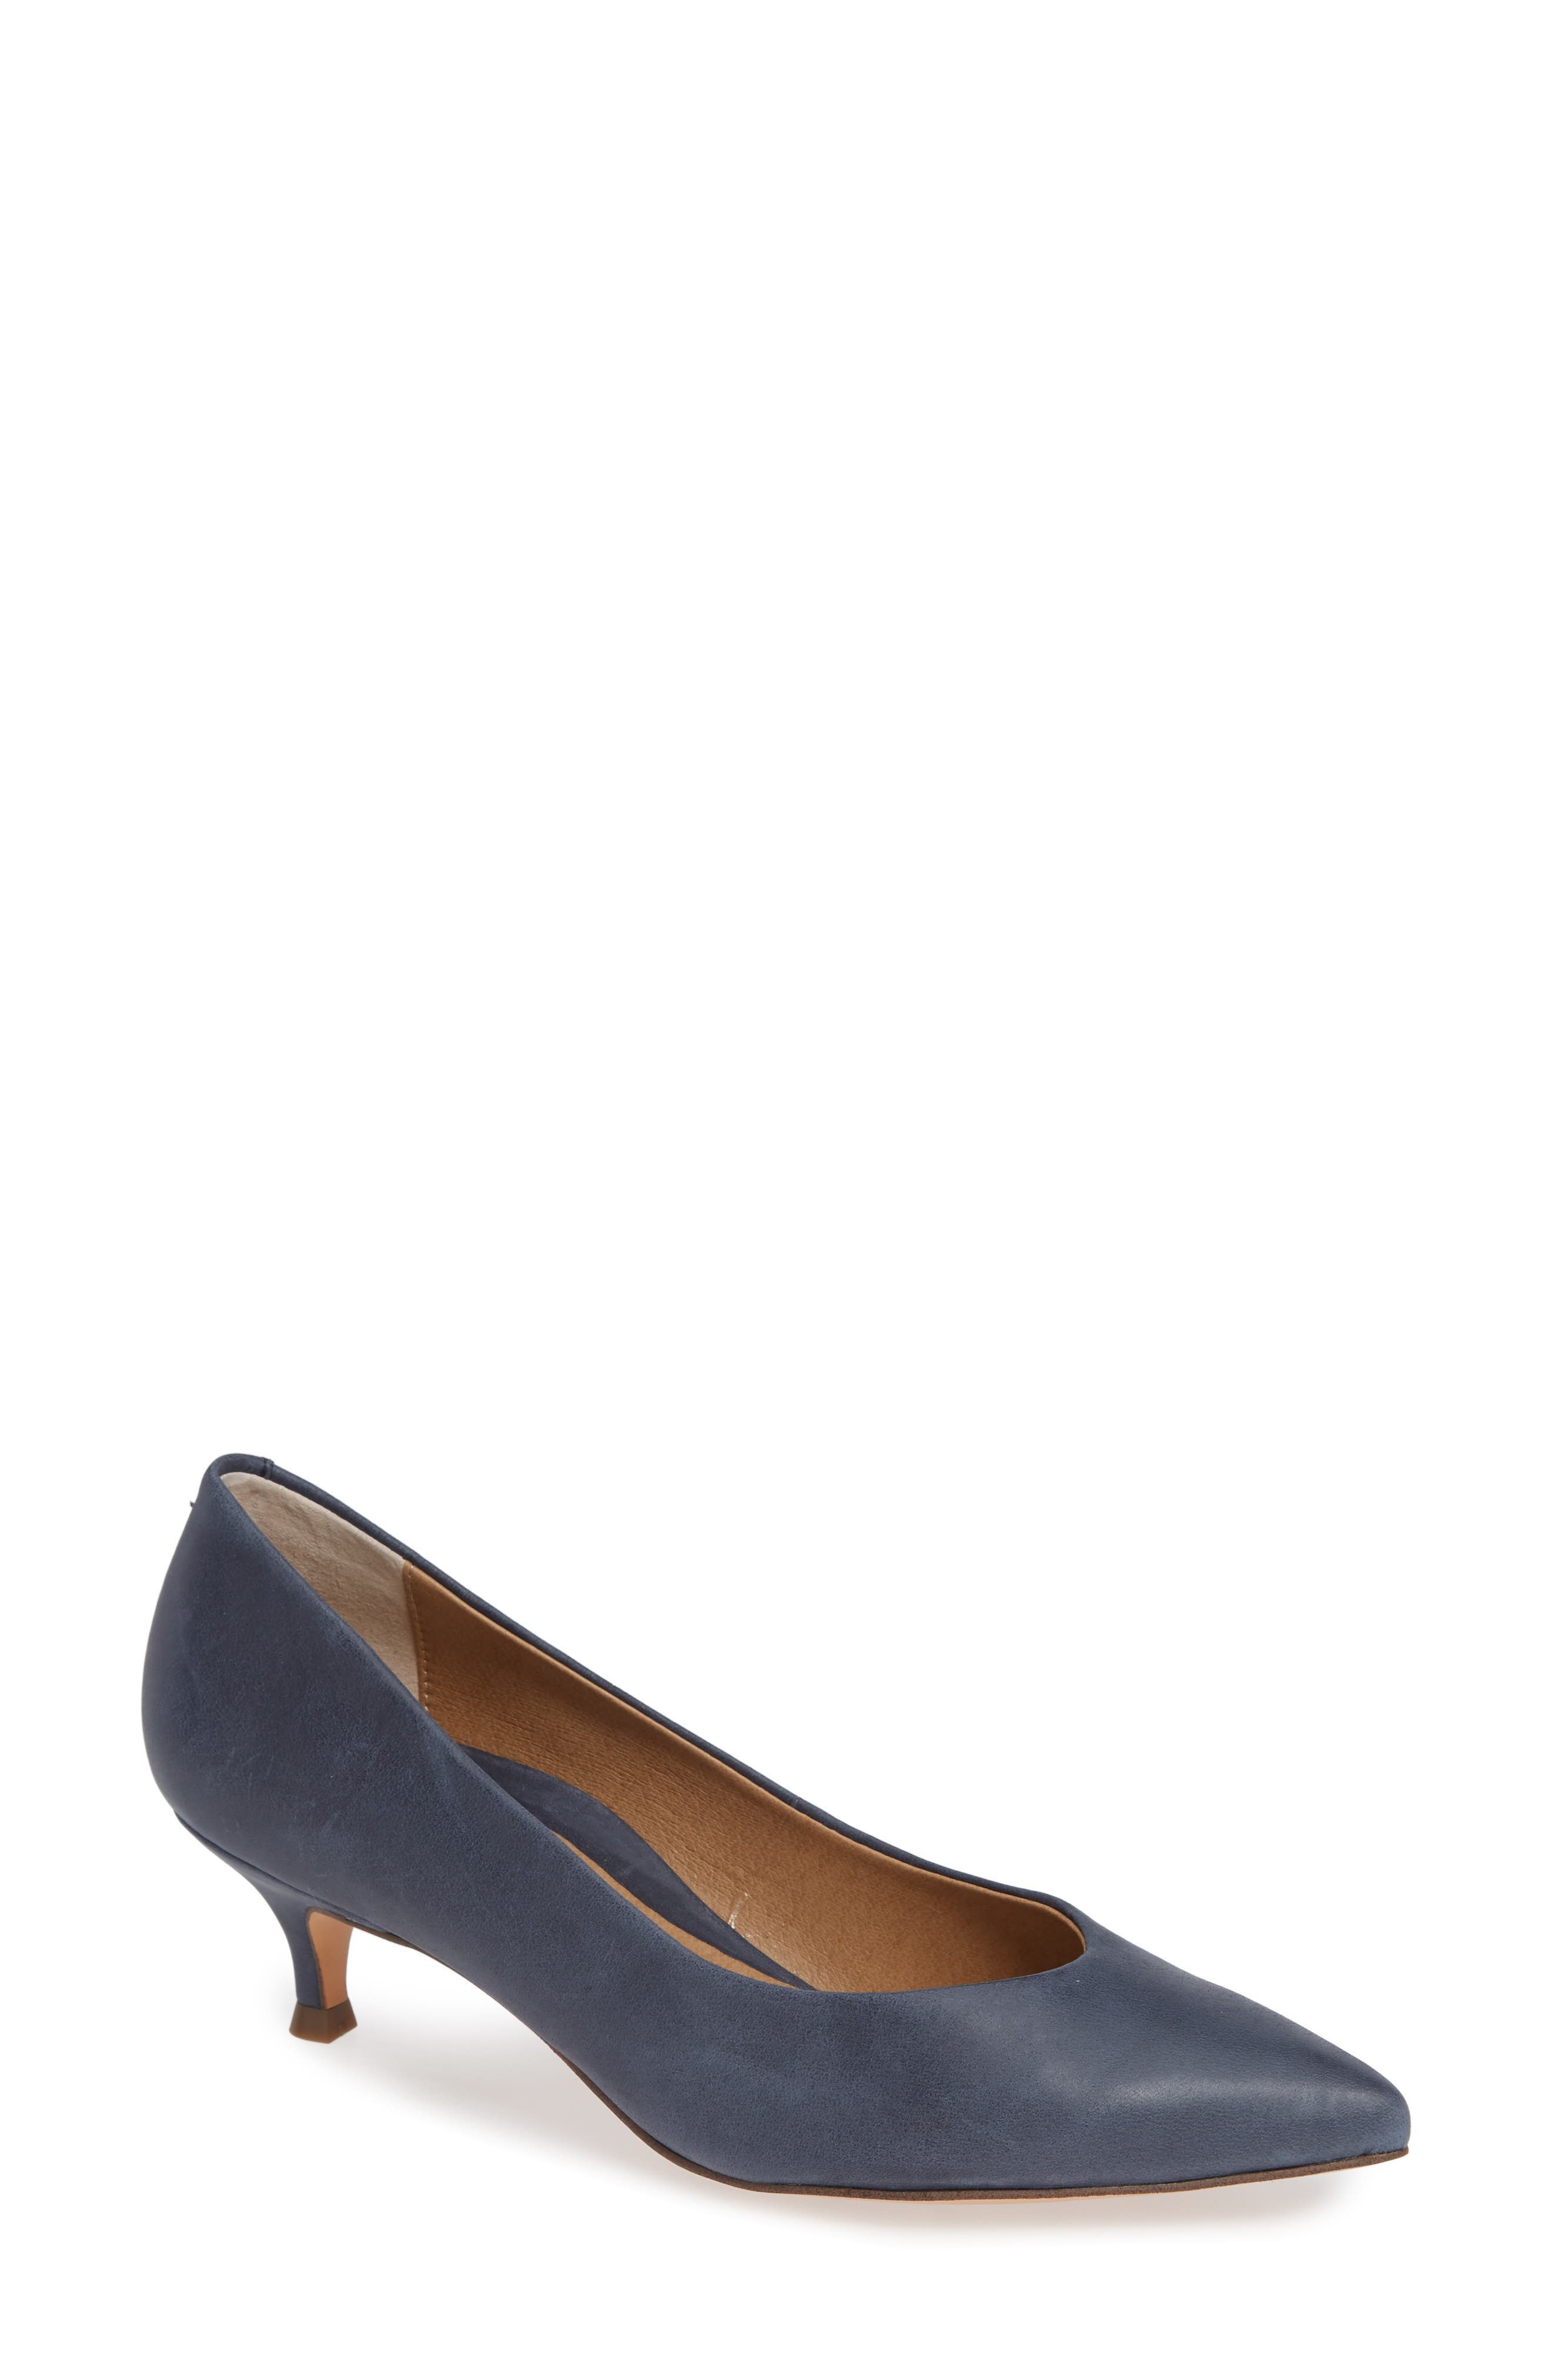 VIONIC, Josie Kitten Heel Pump, Main thumbnail 1, color, NAVY LEATHER